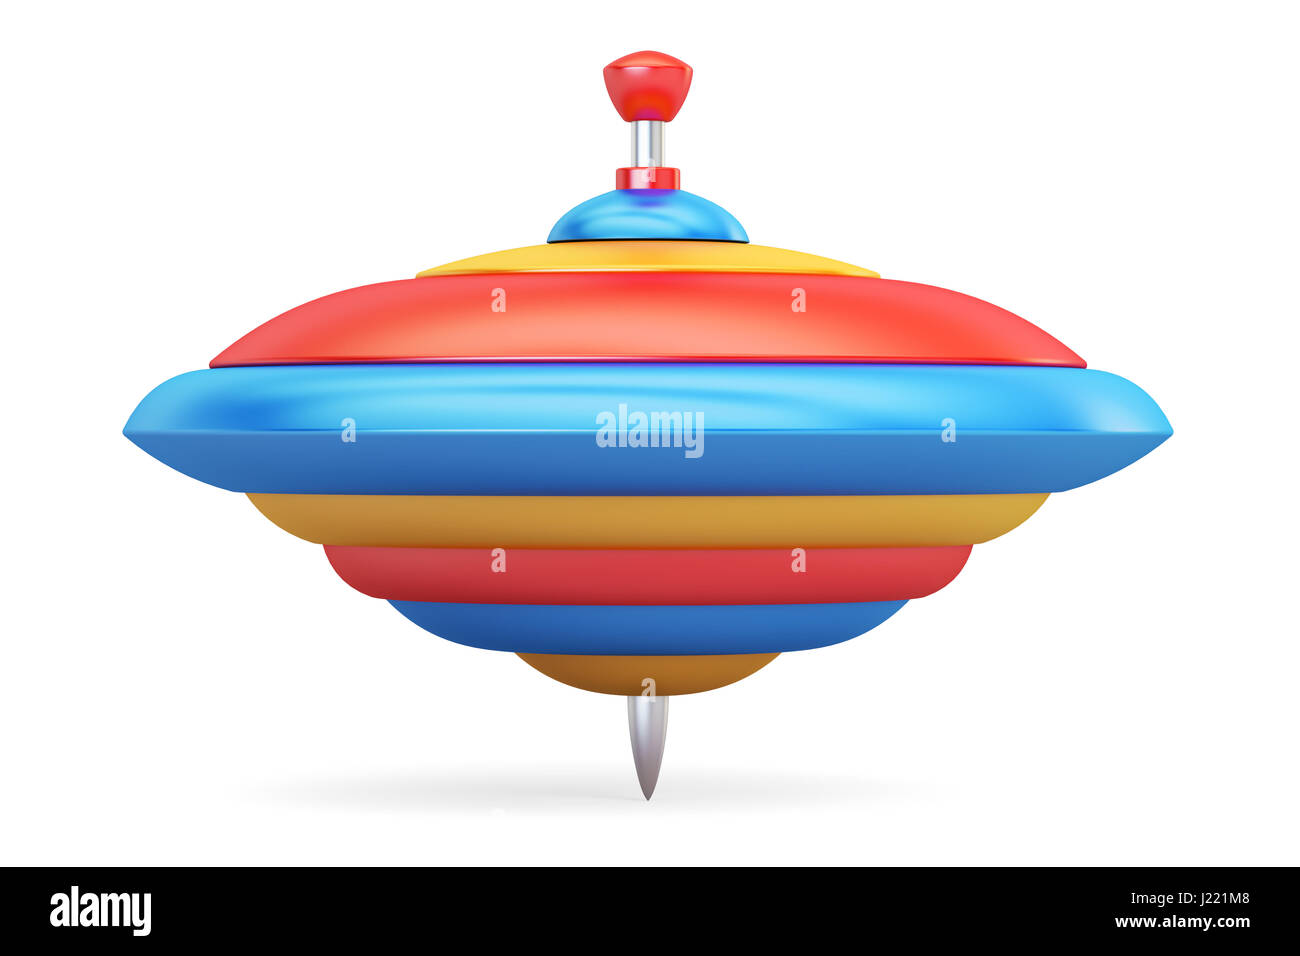 Whirligig top closeup, 3d rendering isolated on white background - Stock Image